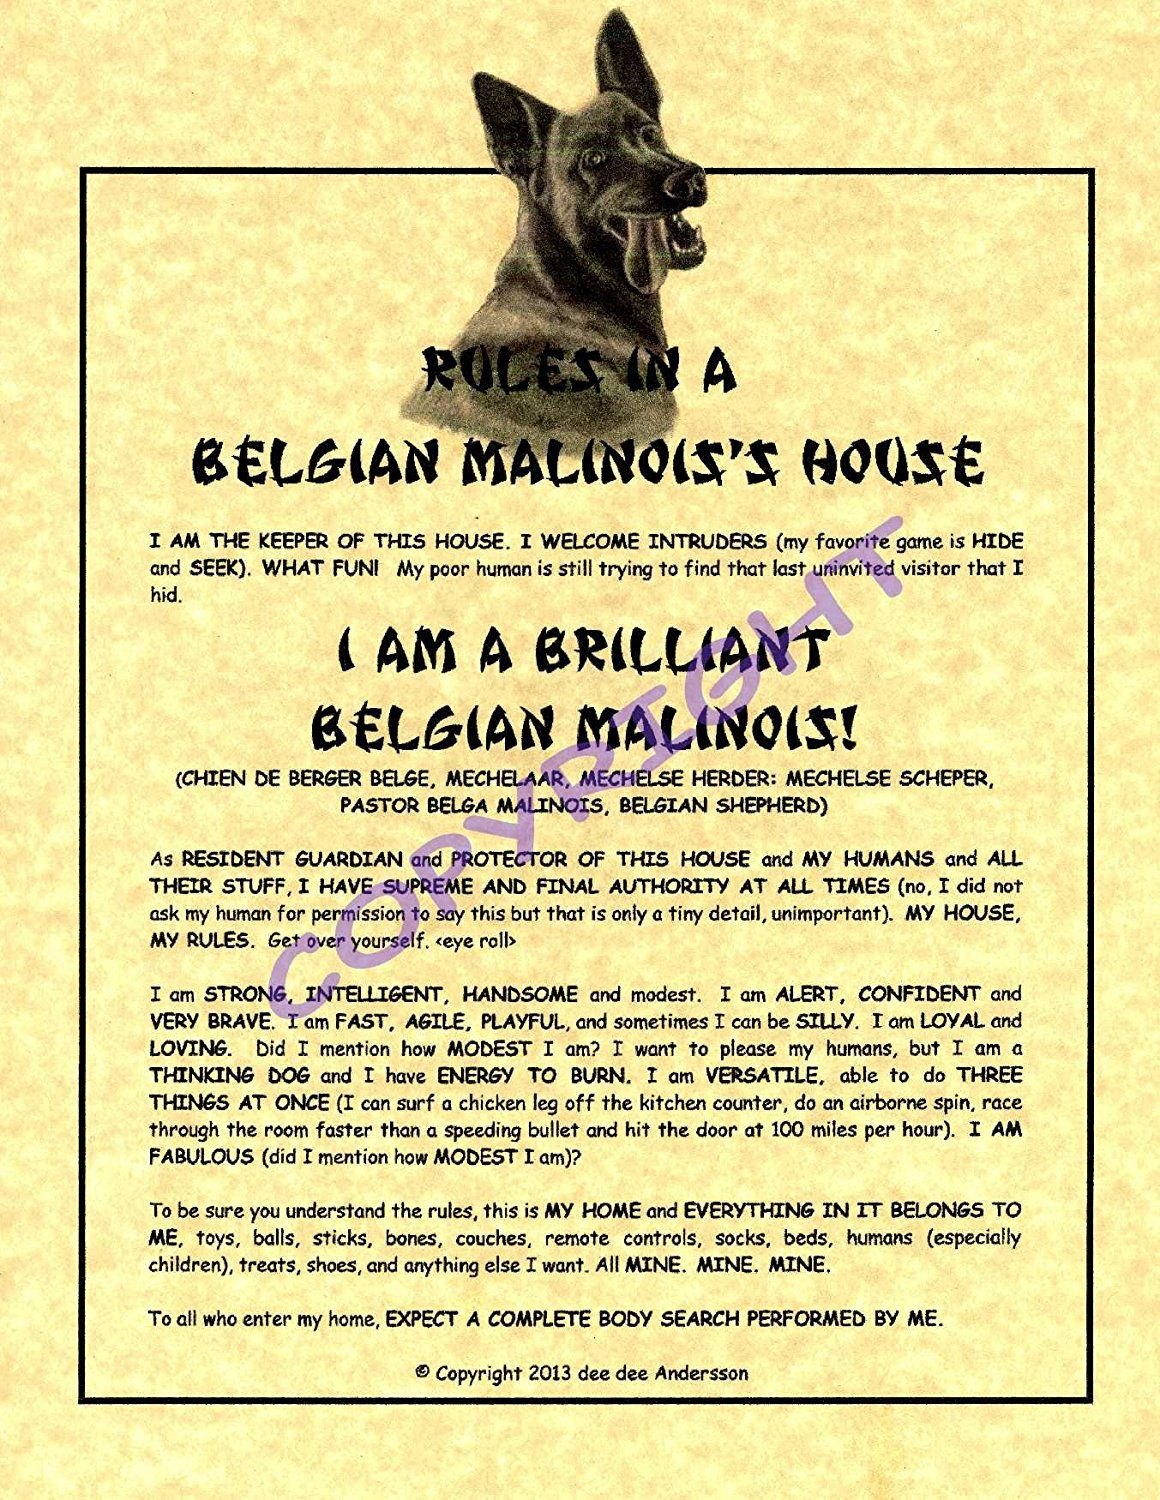 Rules In A Belgian Malinois 39 House Malinois Belgian